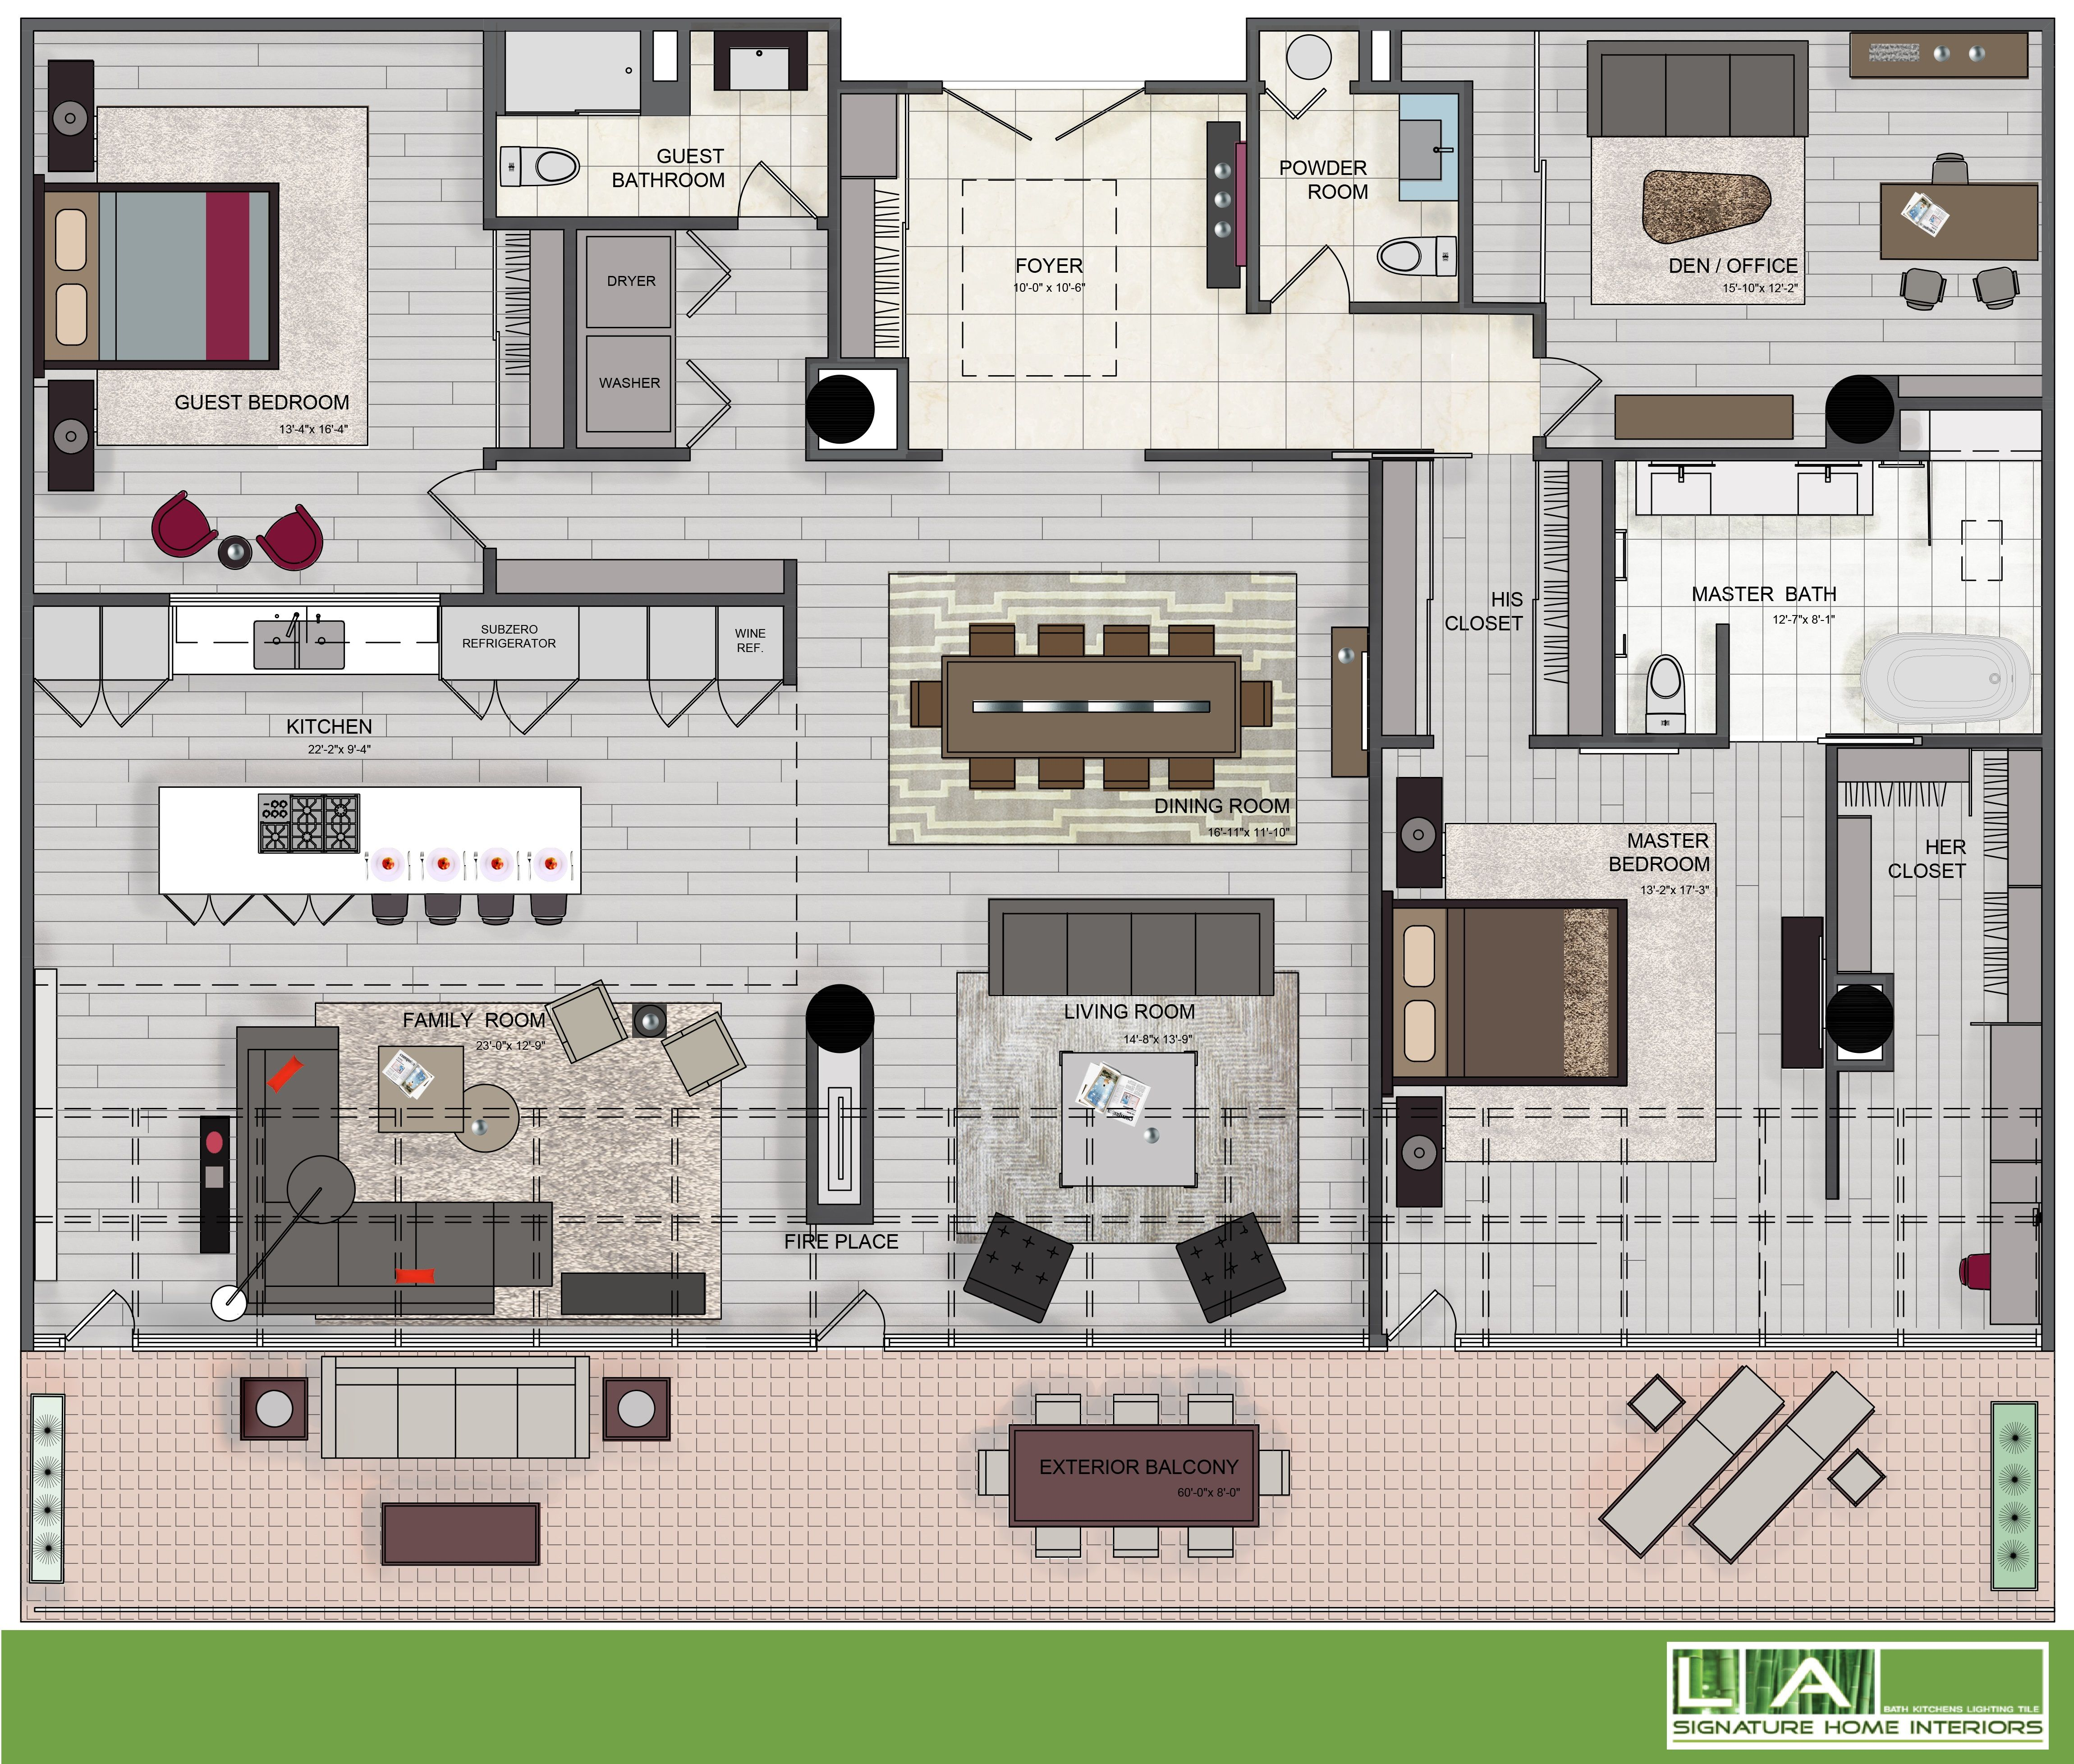 A rendered floor plan helps clients to visualize walking